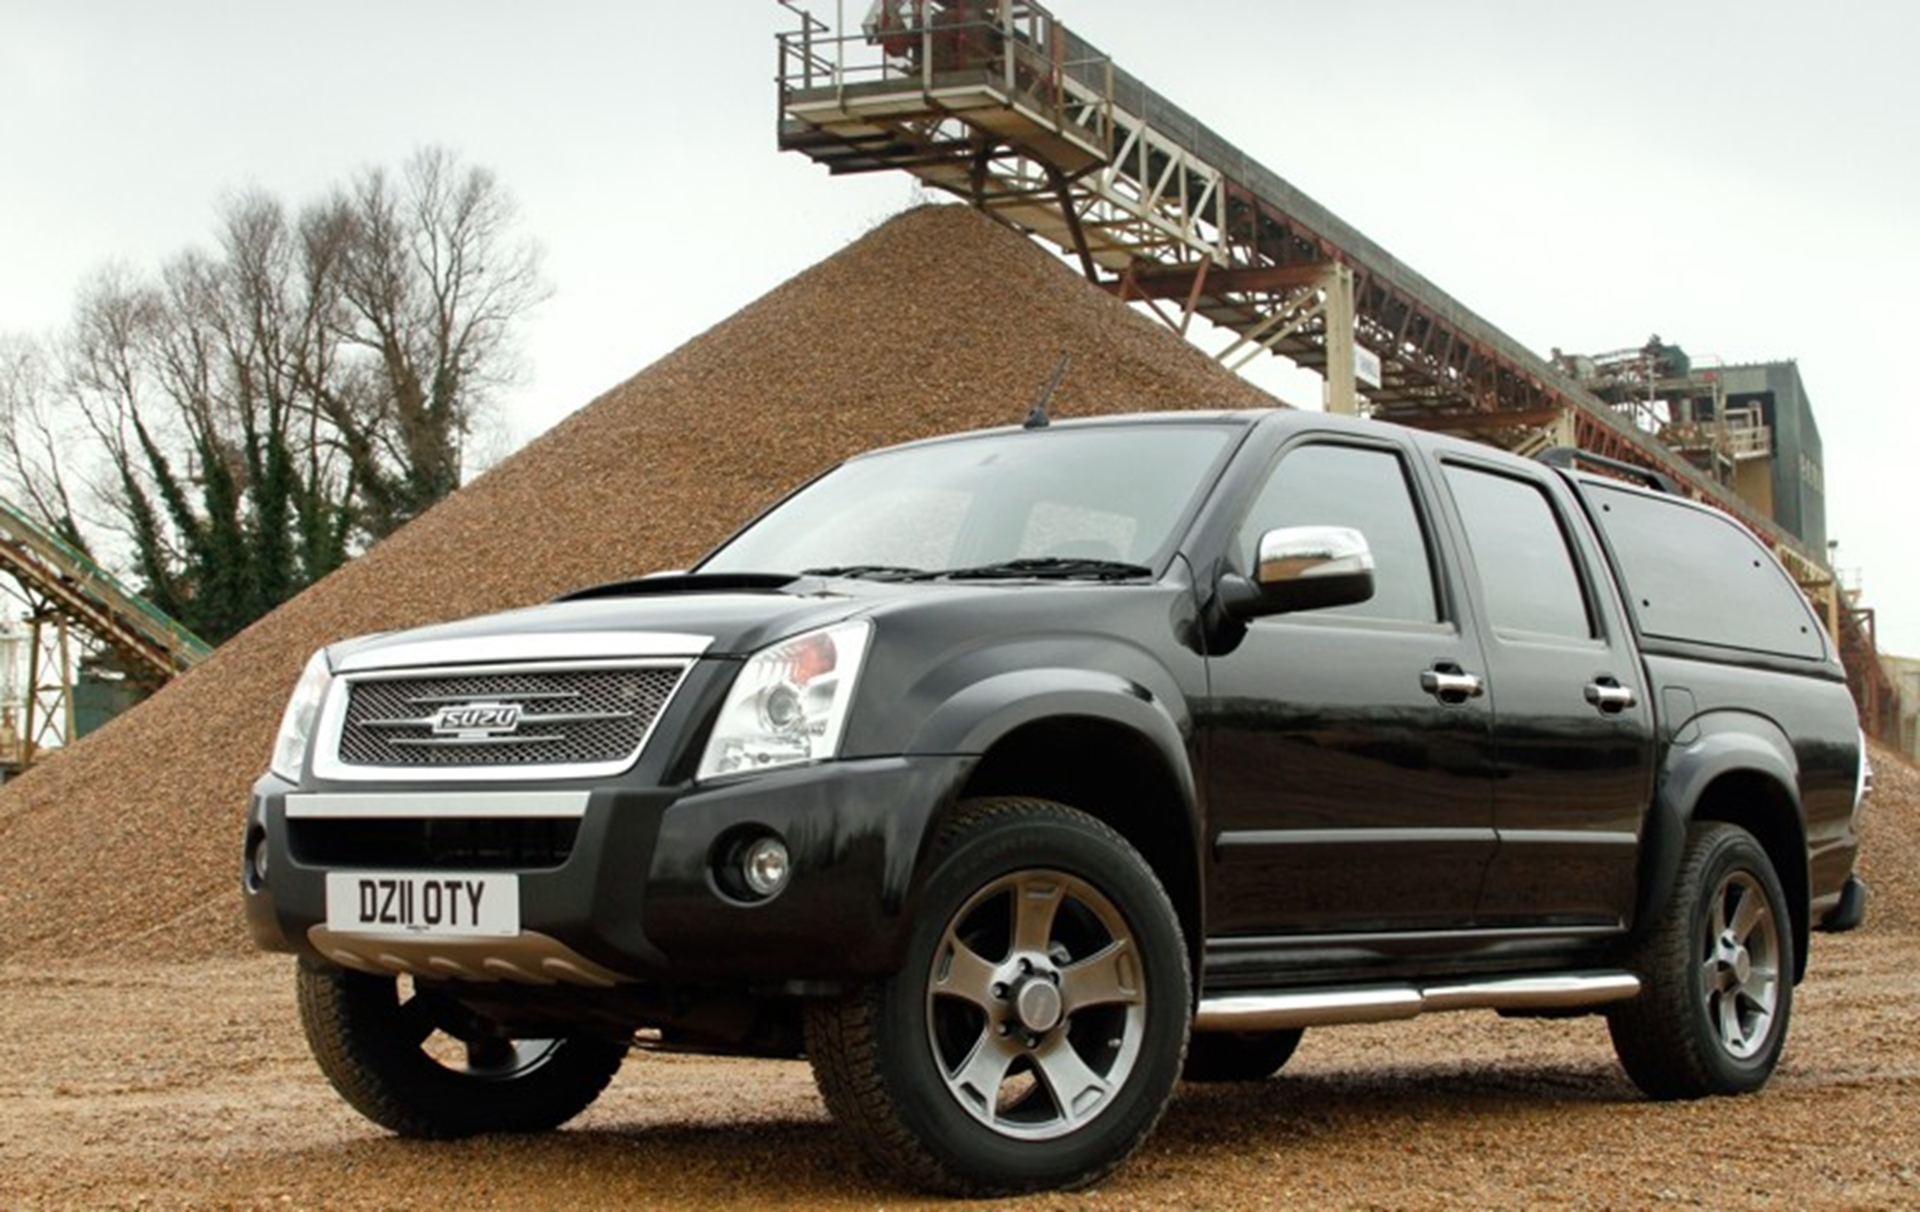 PICK UP IN DEMAND SEES ISUZU UK TOP EUROPEAN SALES CHARTS